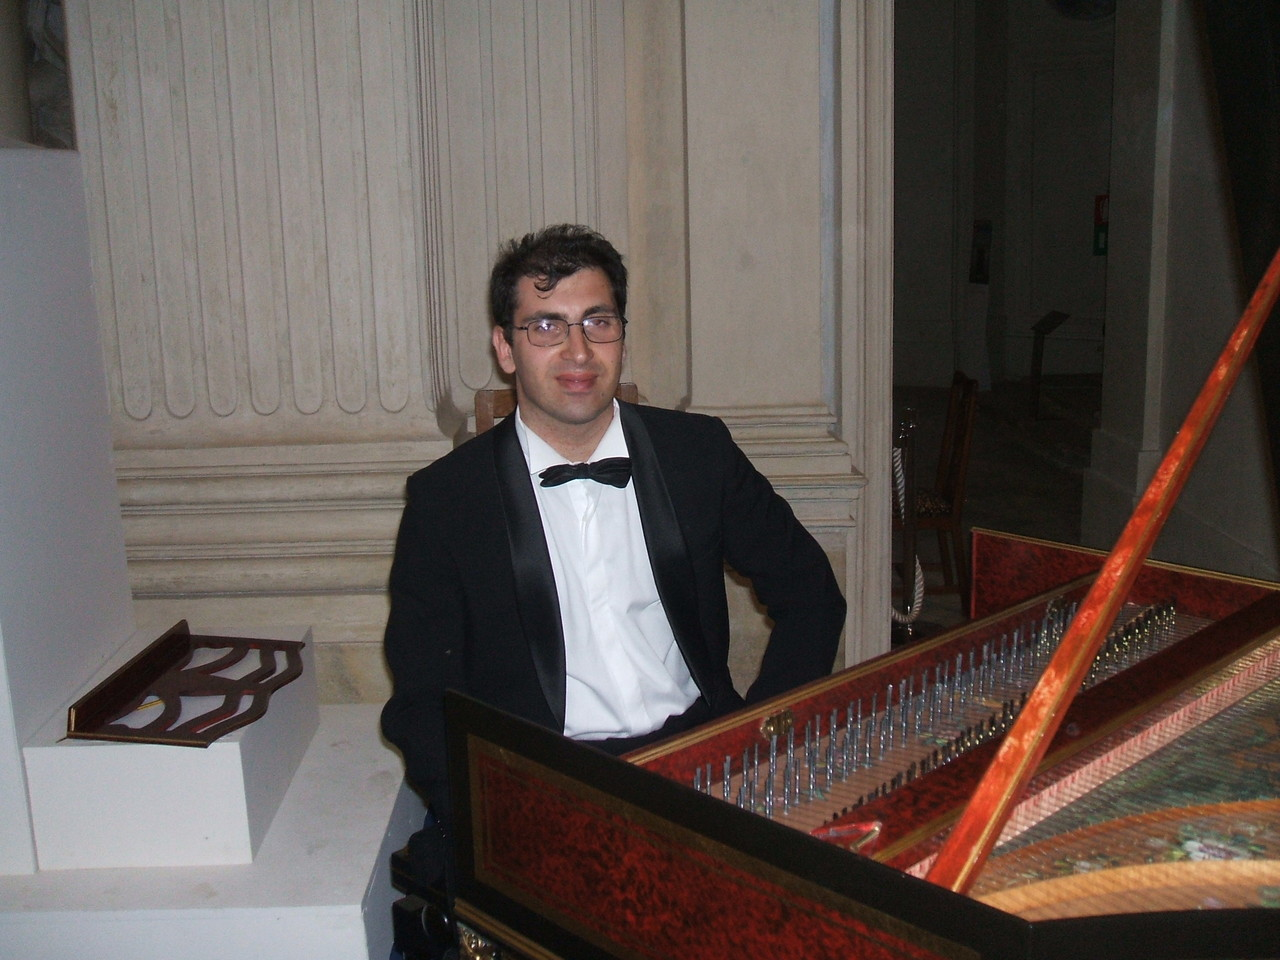 ..at the harpsichord